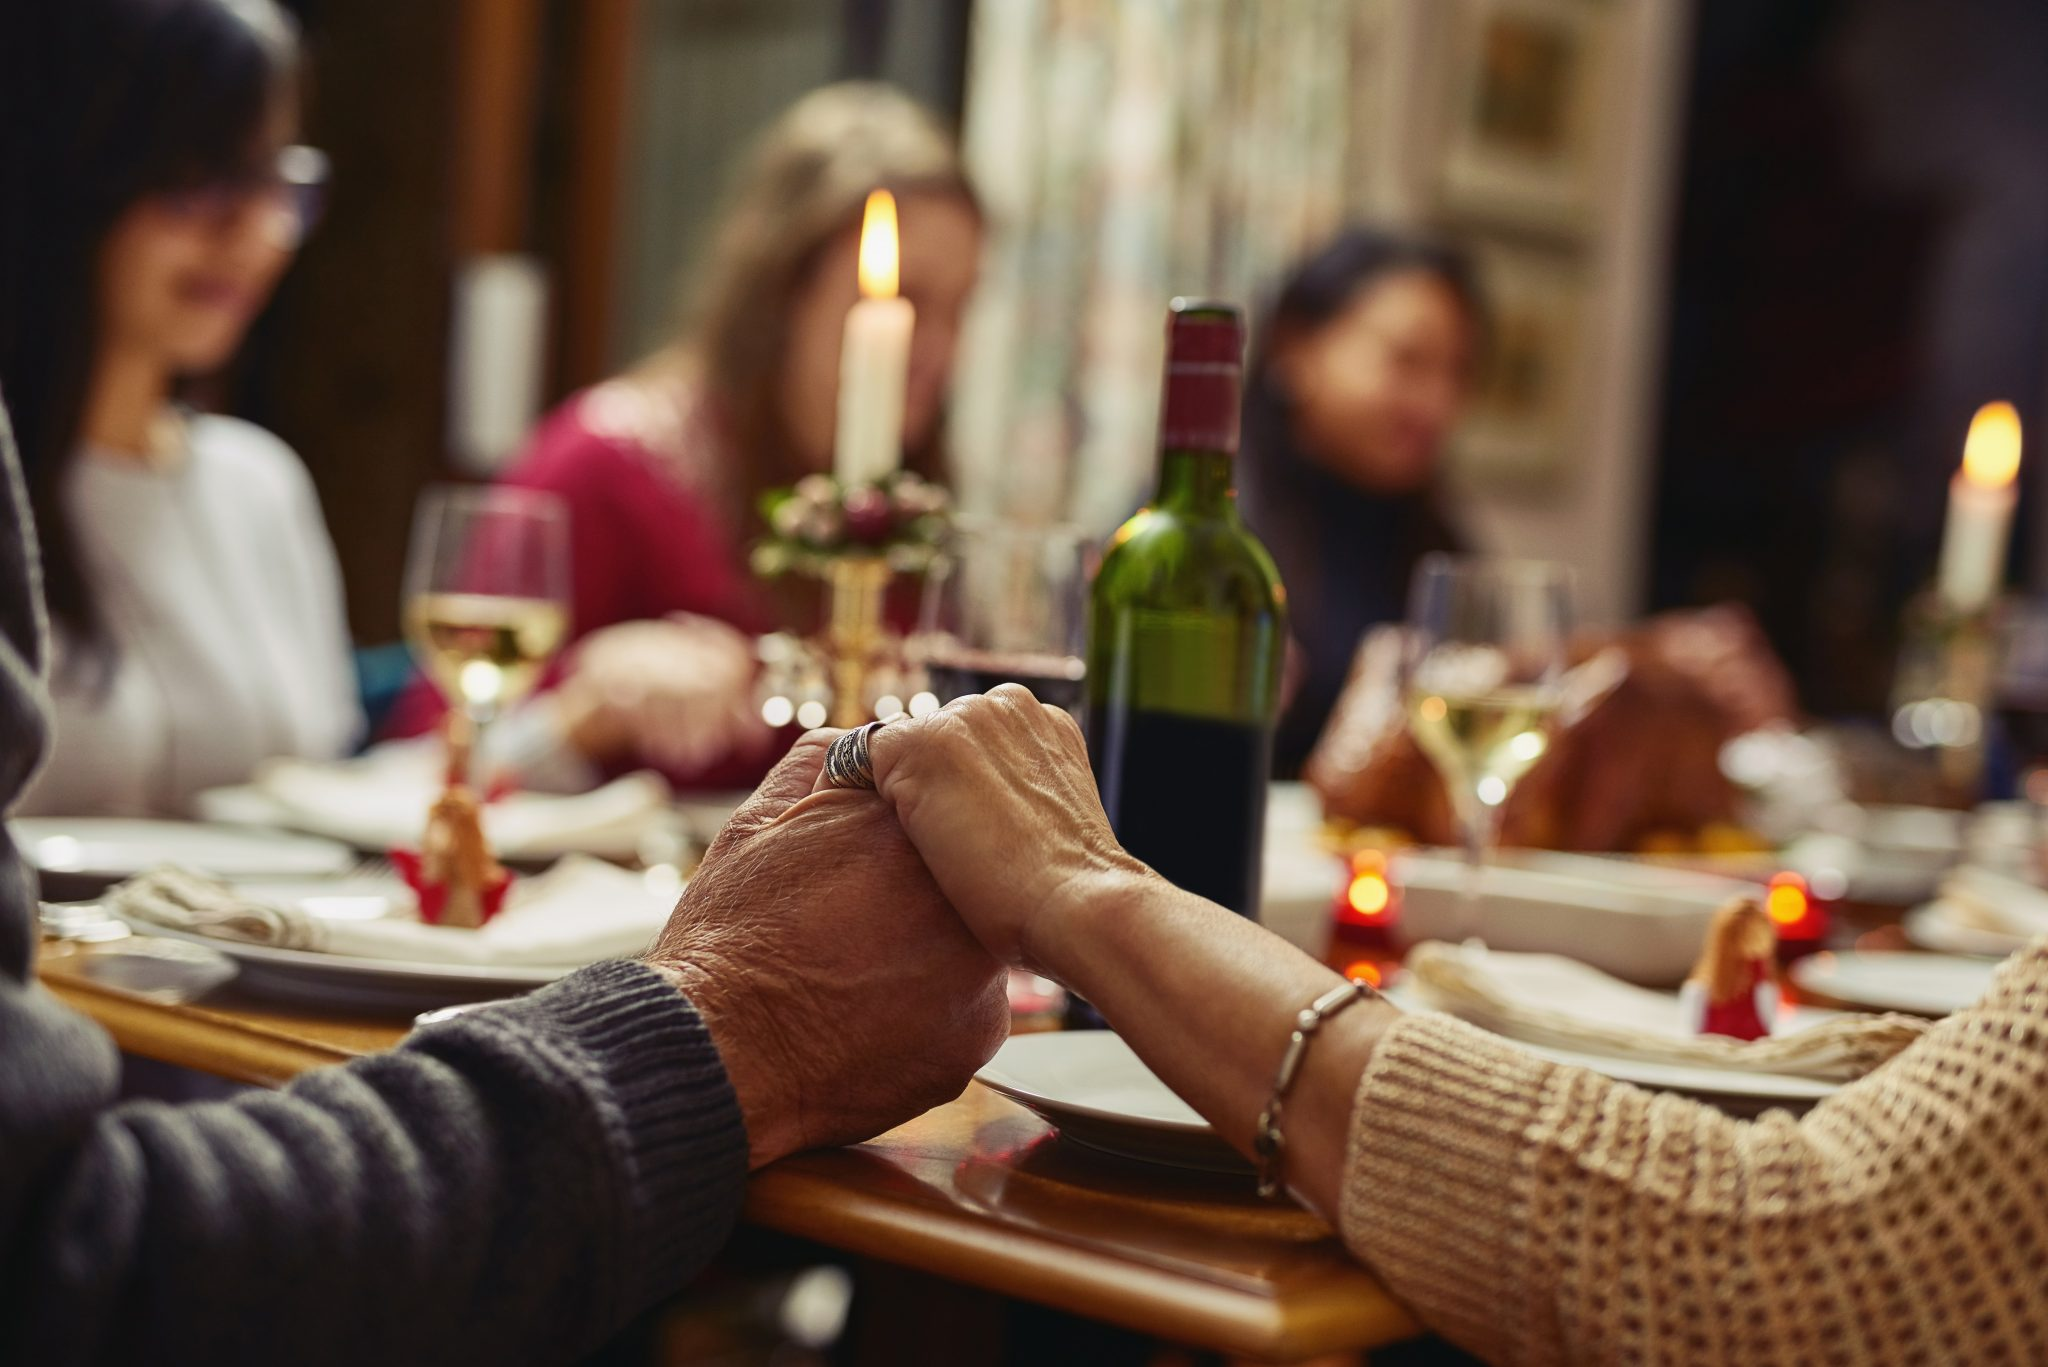 How to Merge Family Holiday Traditions with a S.O.